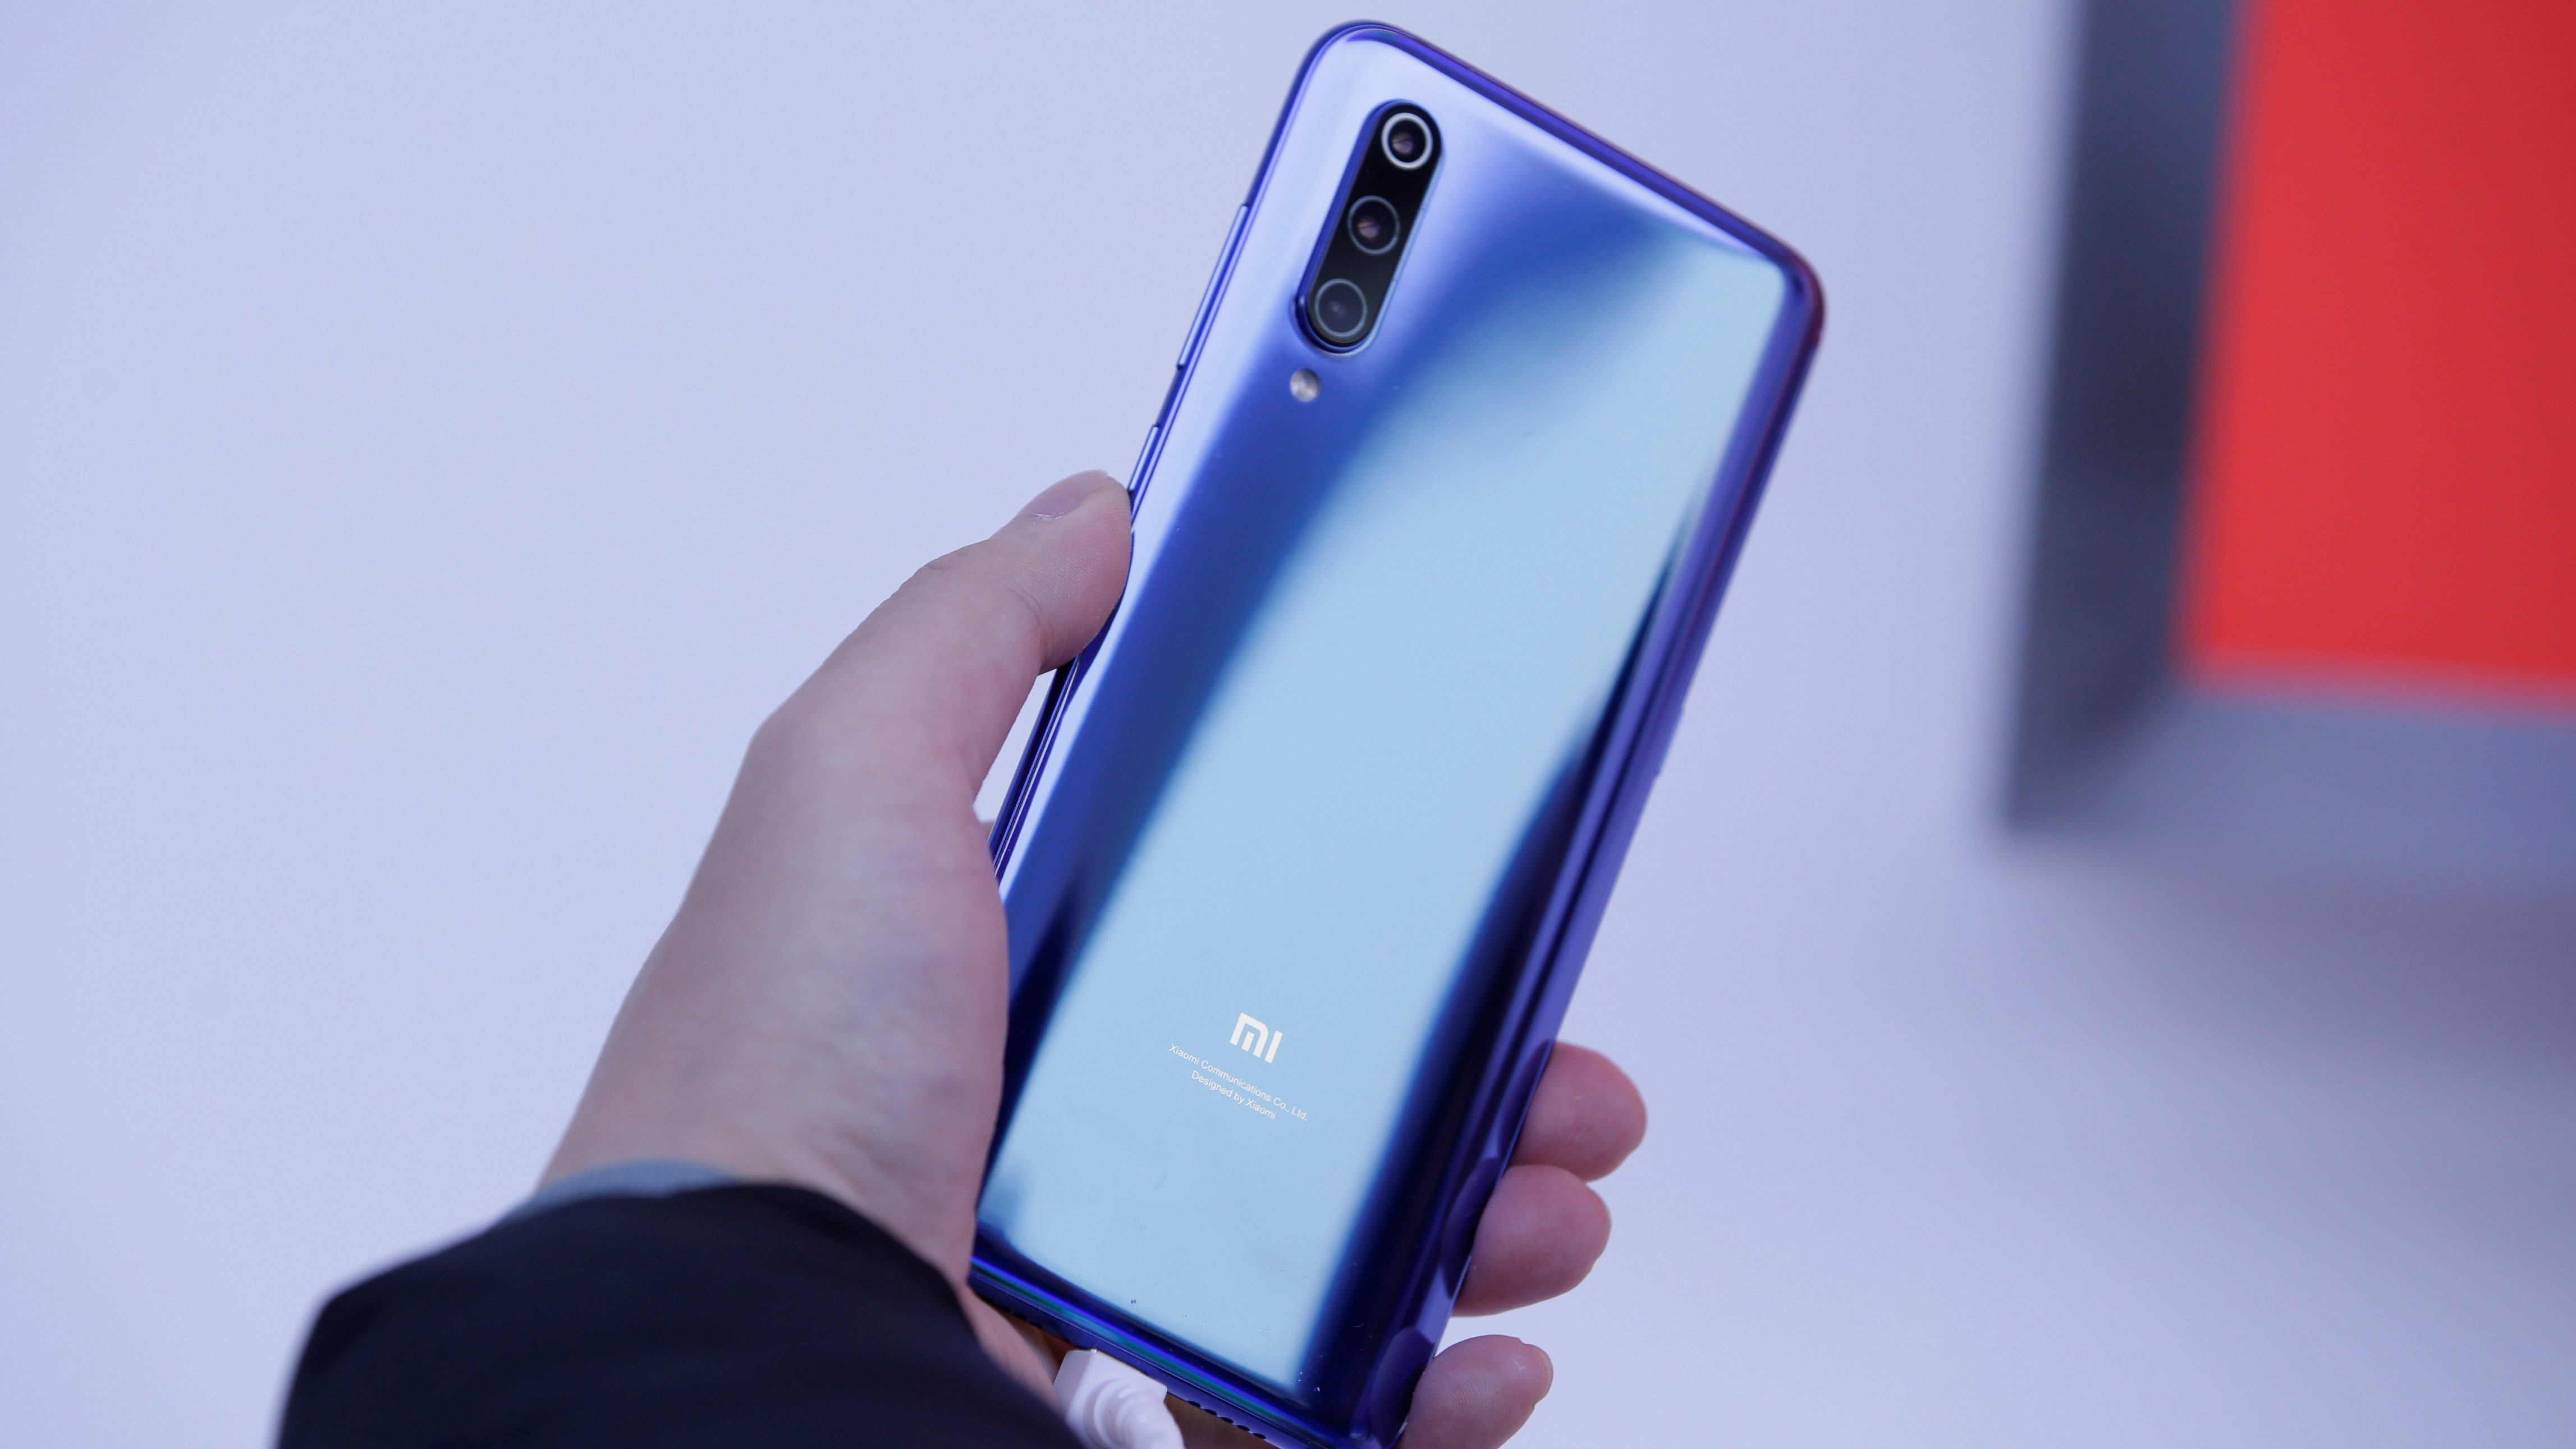 China's Realme is aping Xiaomi in India's smartphone wars